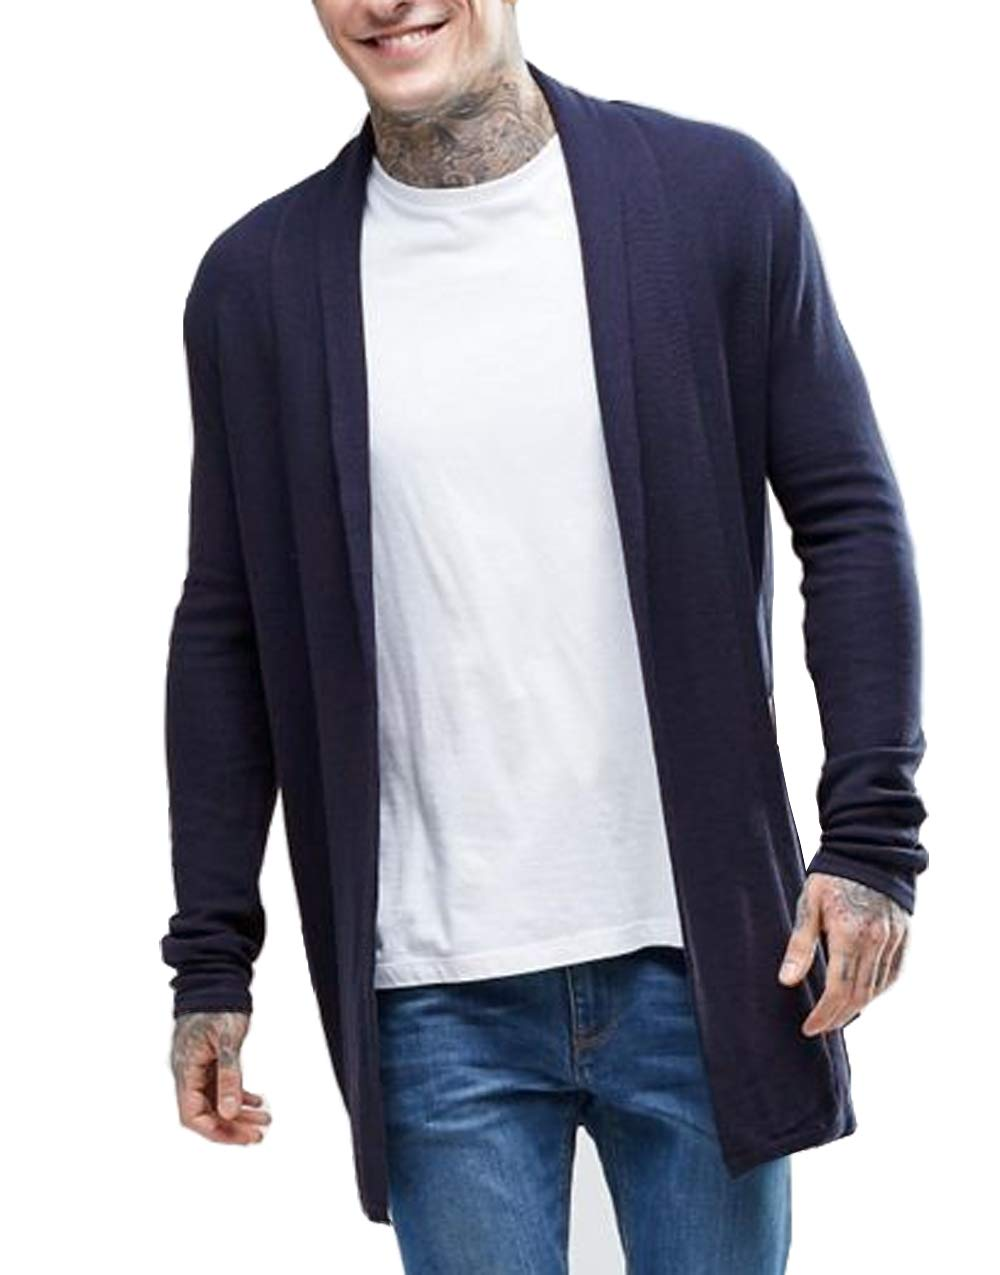 COOFANDY Men's Knitted Cardigan Sweater Slim Fit Casual Longline Open Front Cape Cloak, Navy Blue, Small